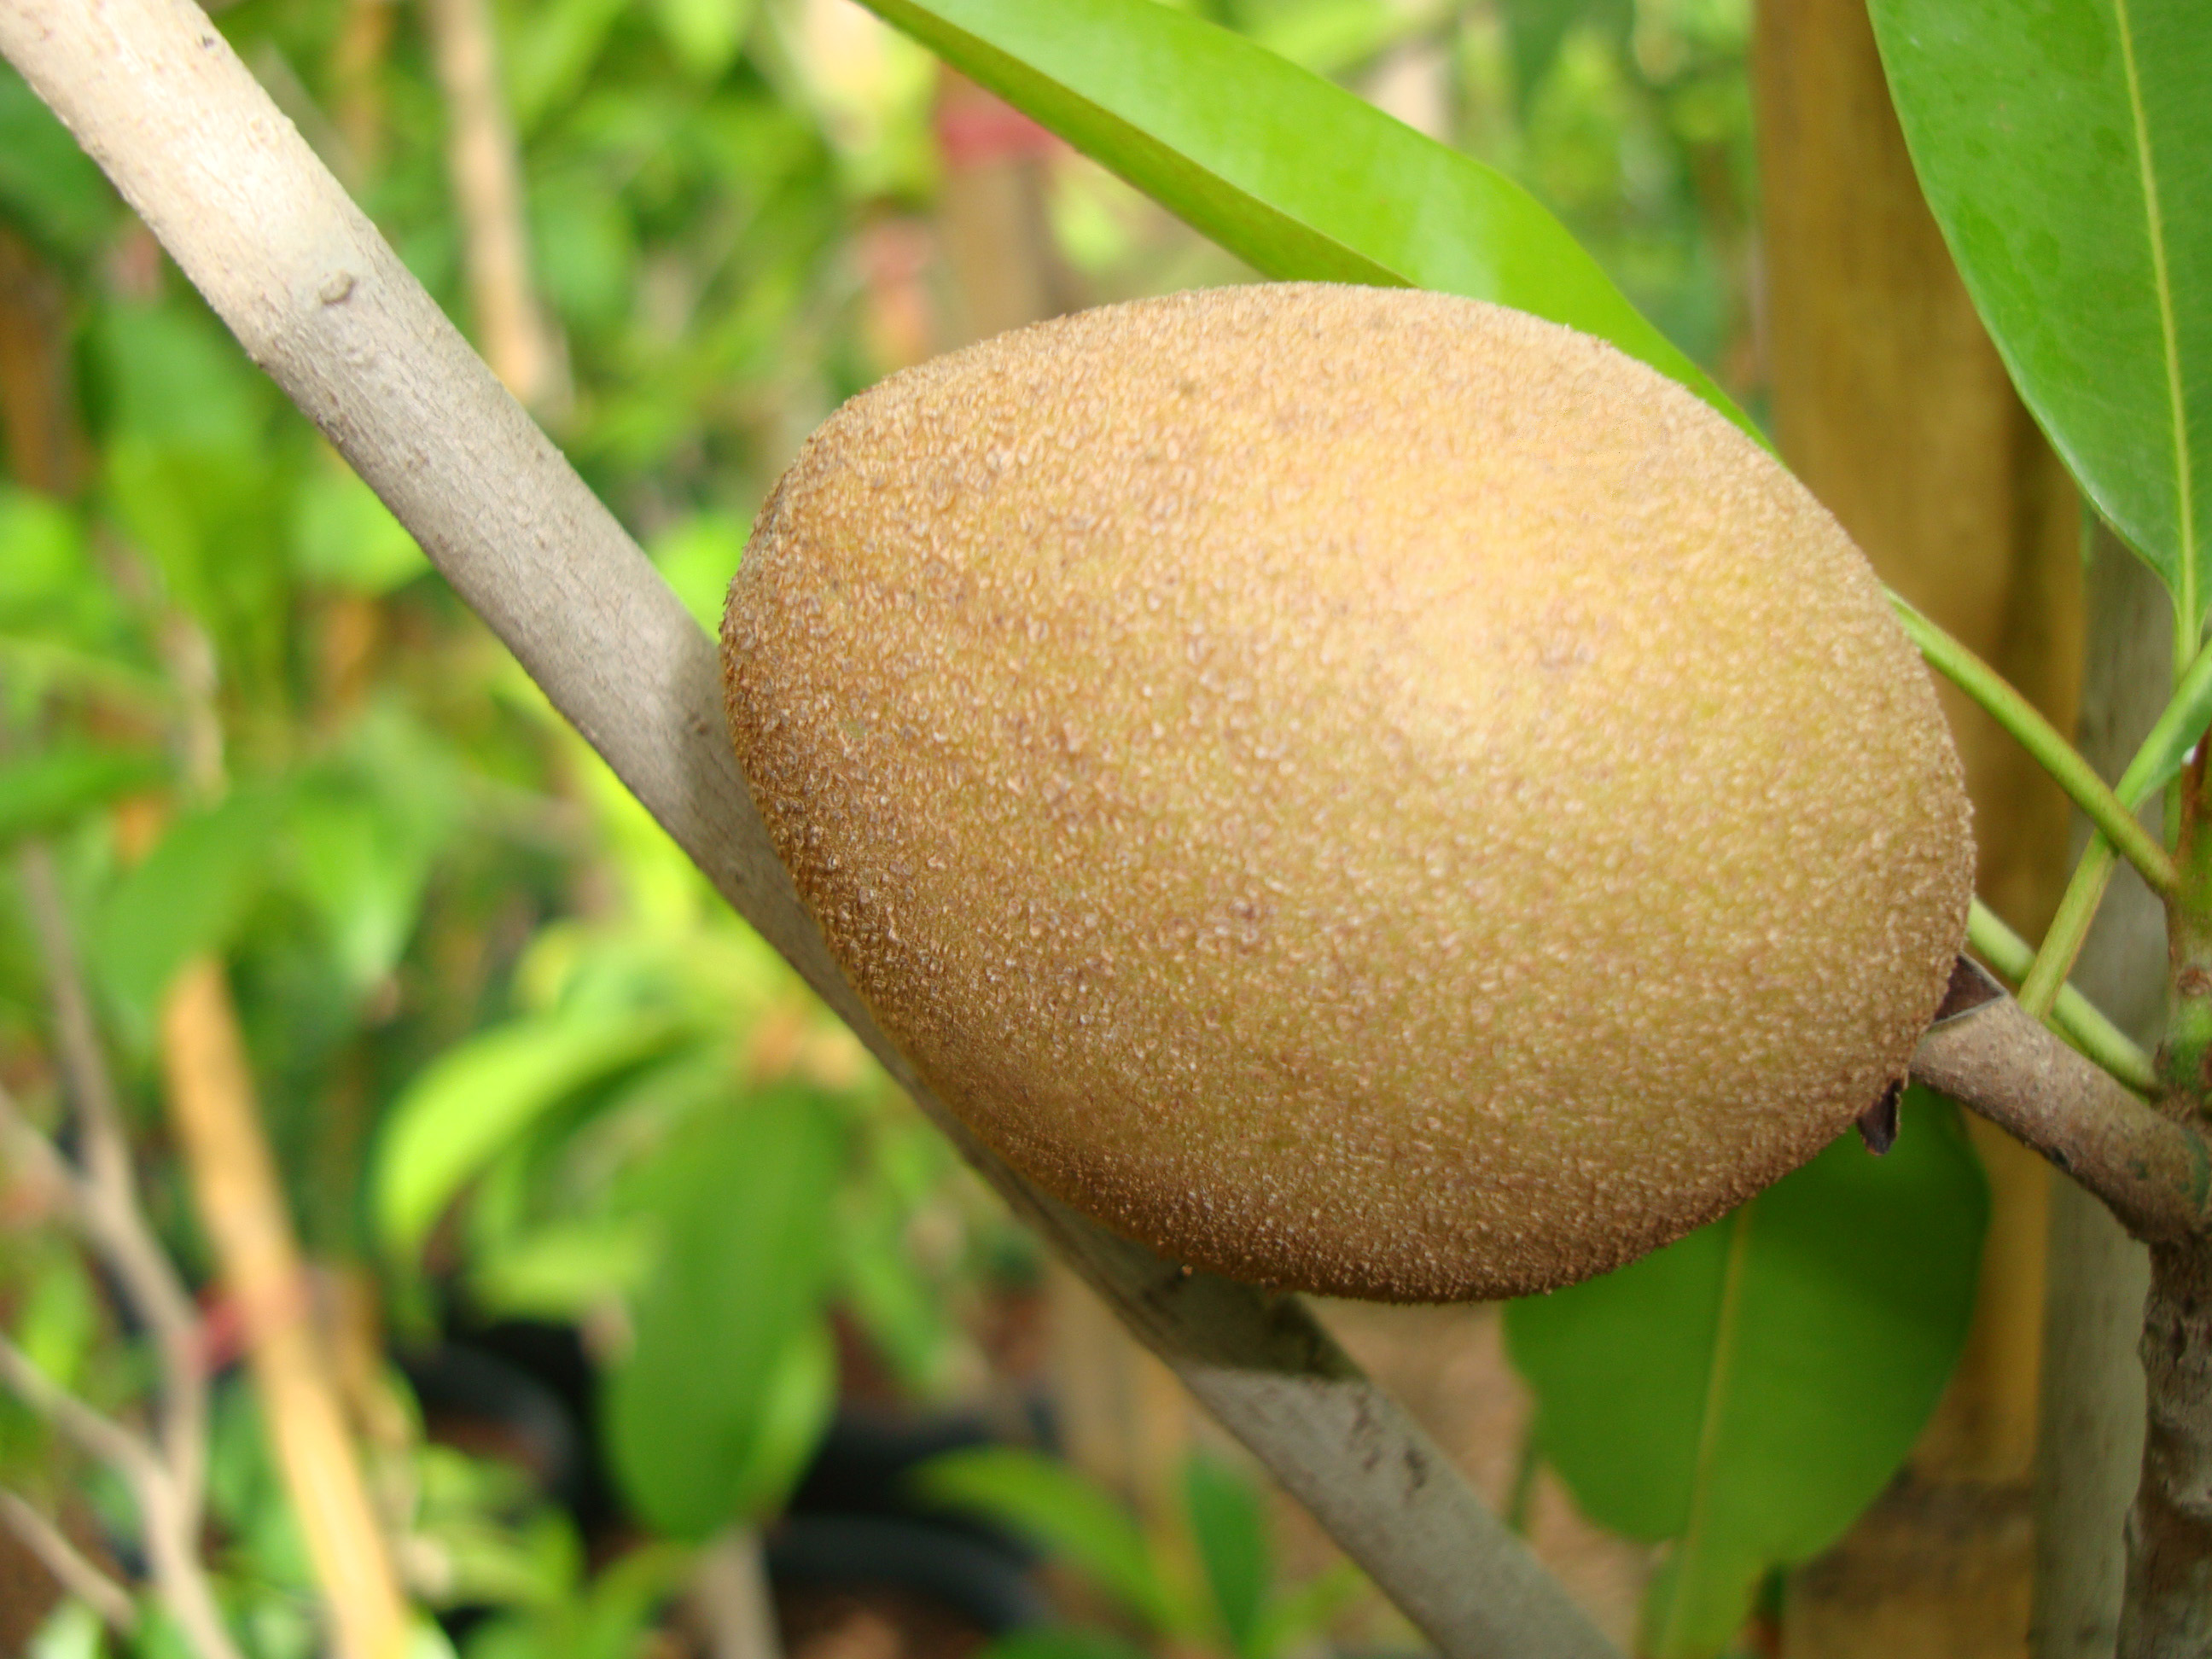 Manilkara zapota Or Chicko Tree شجرة الشيكو